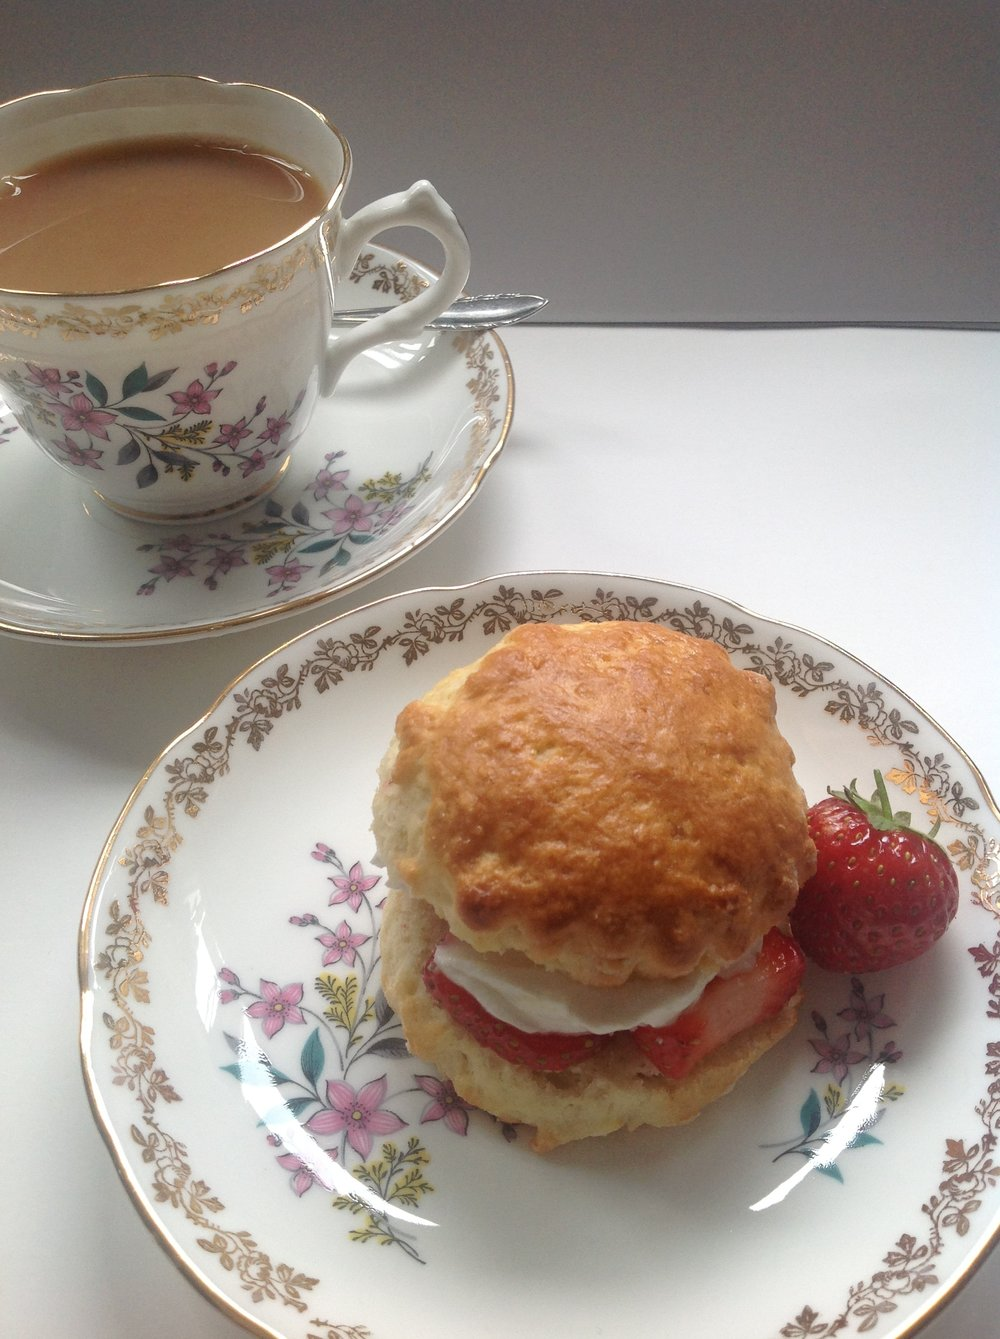 Scone with Strawberries and Clotted Cream